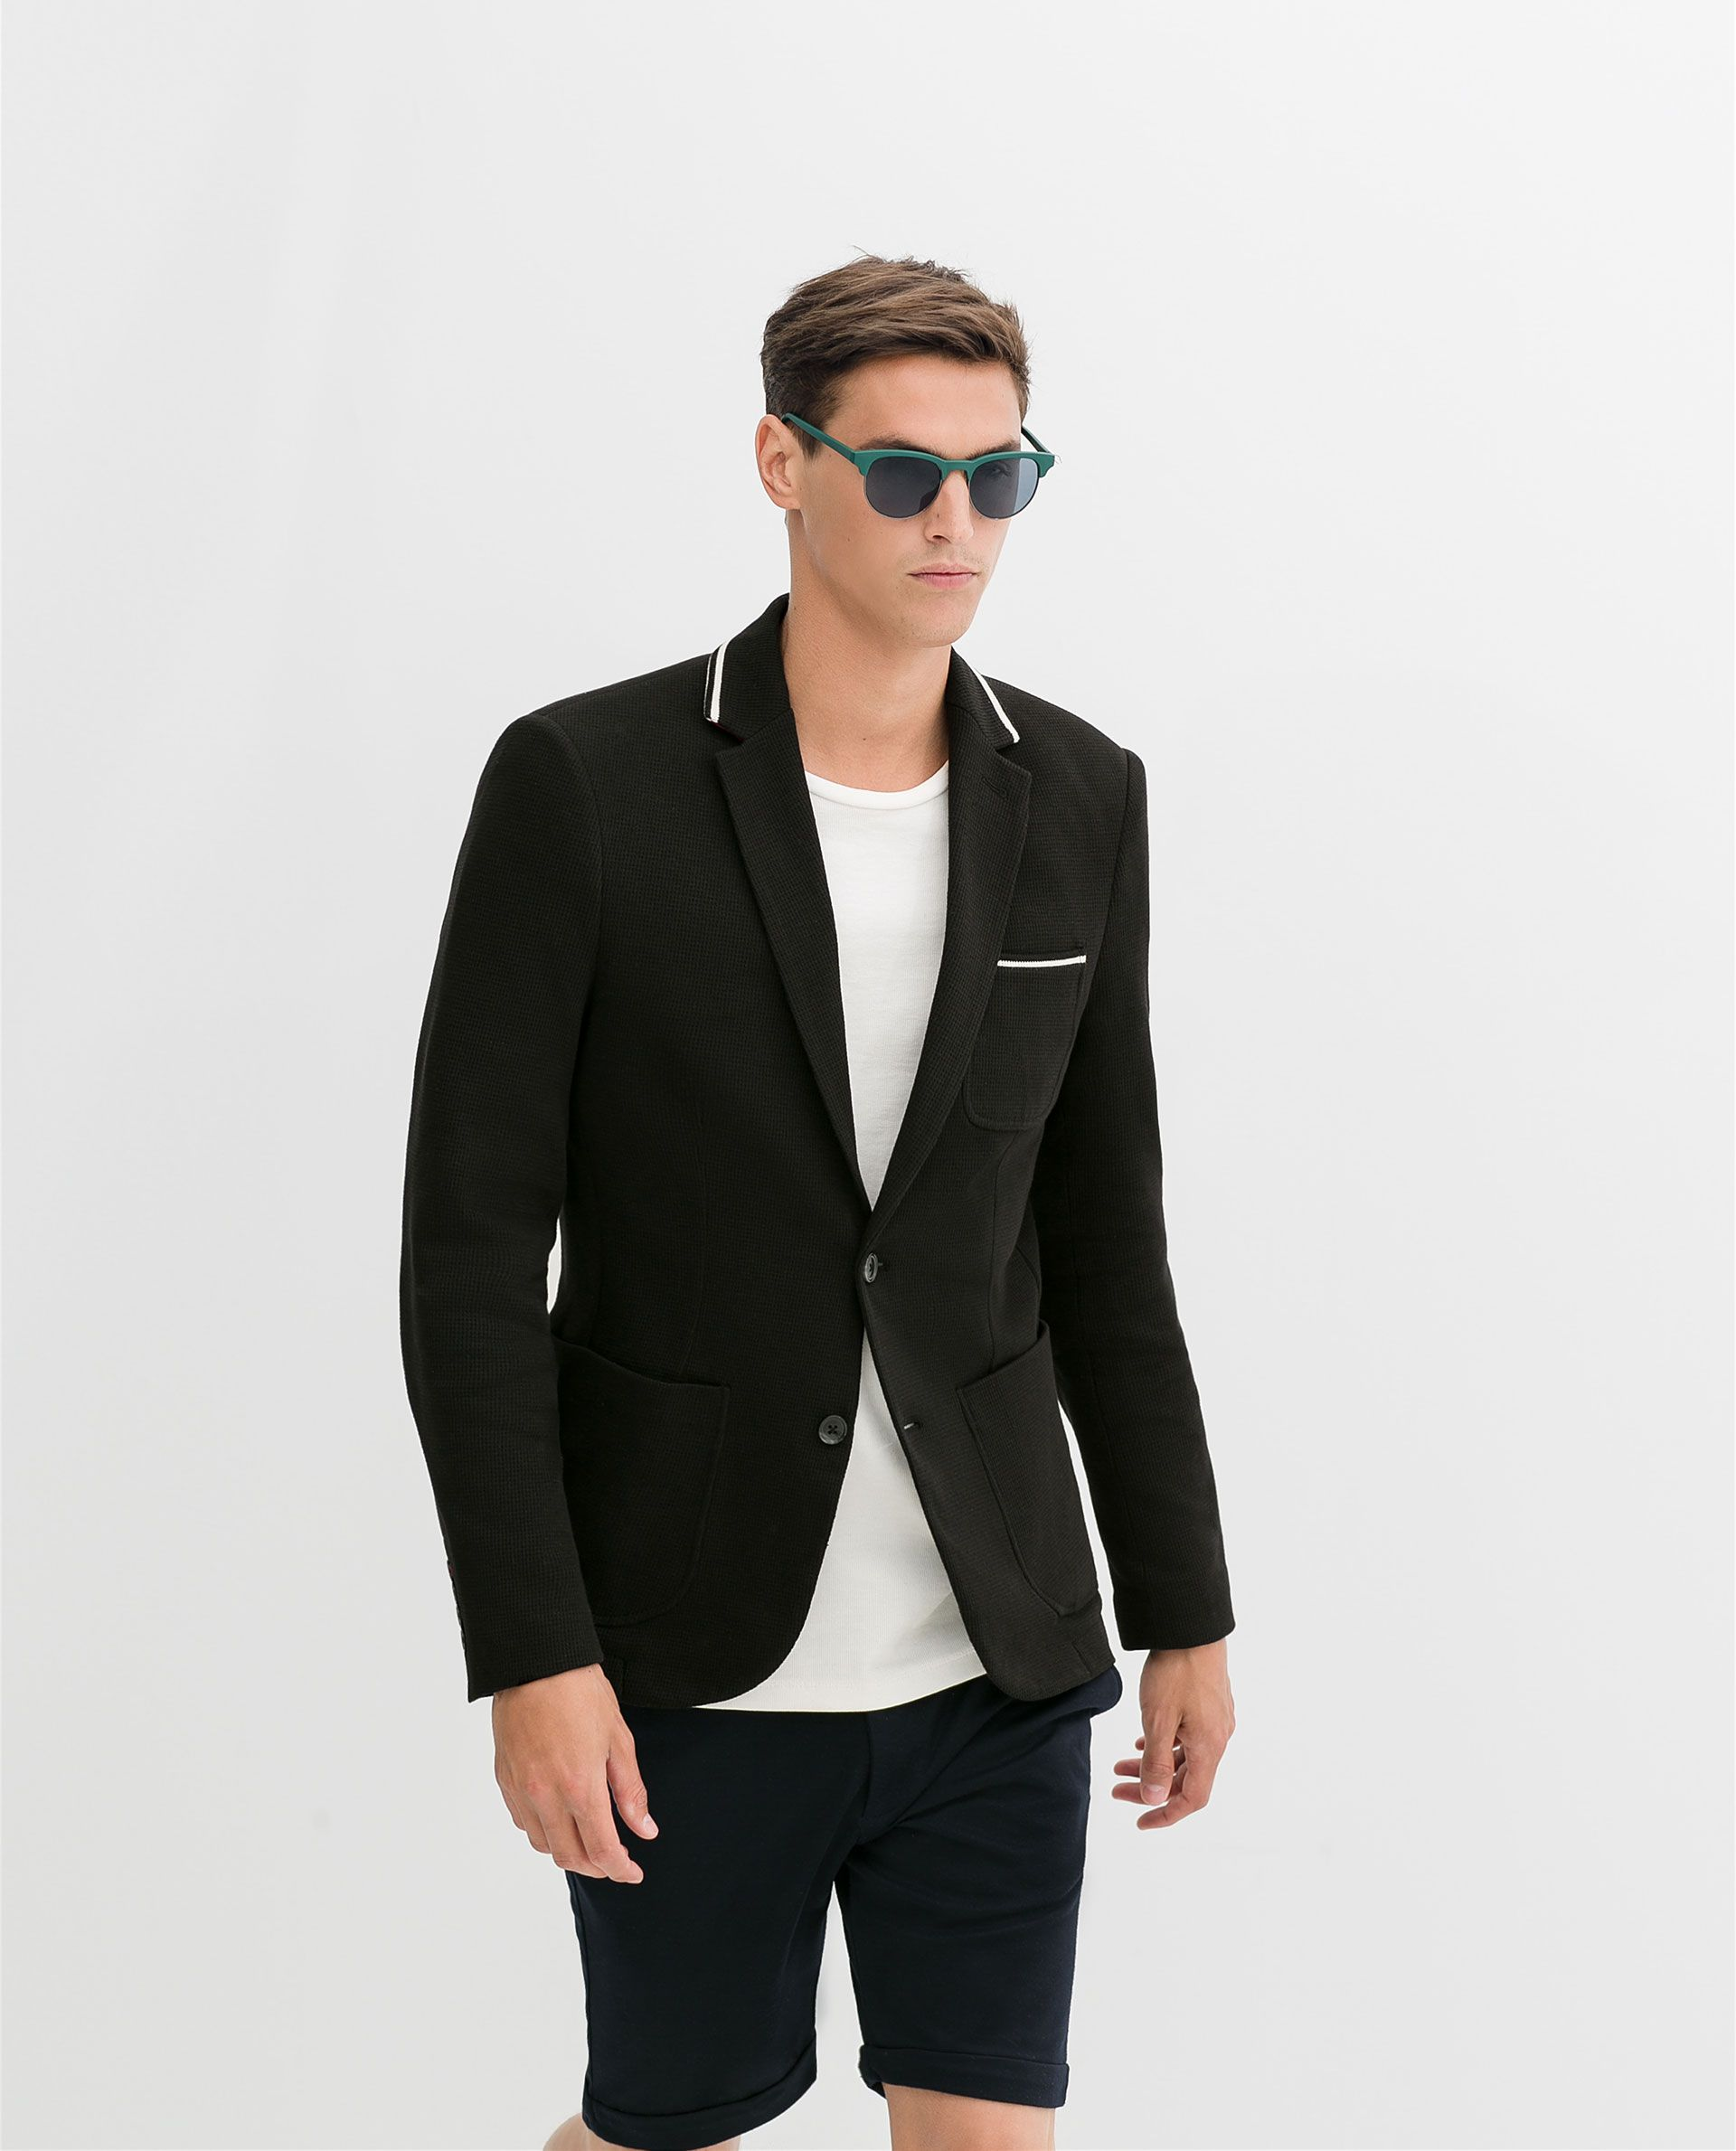 Slim Fit Suits For Men Zara Suit La